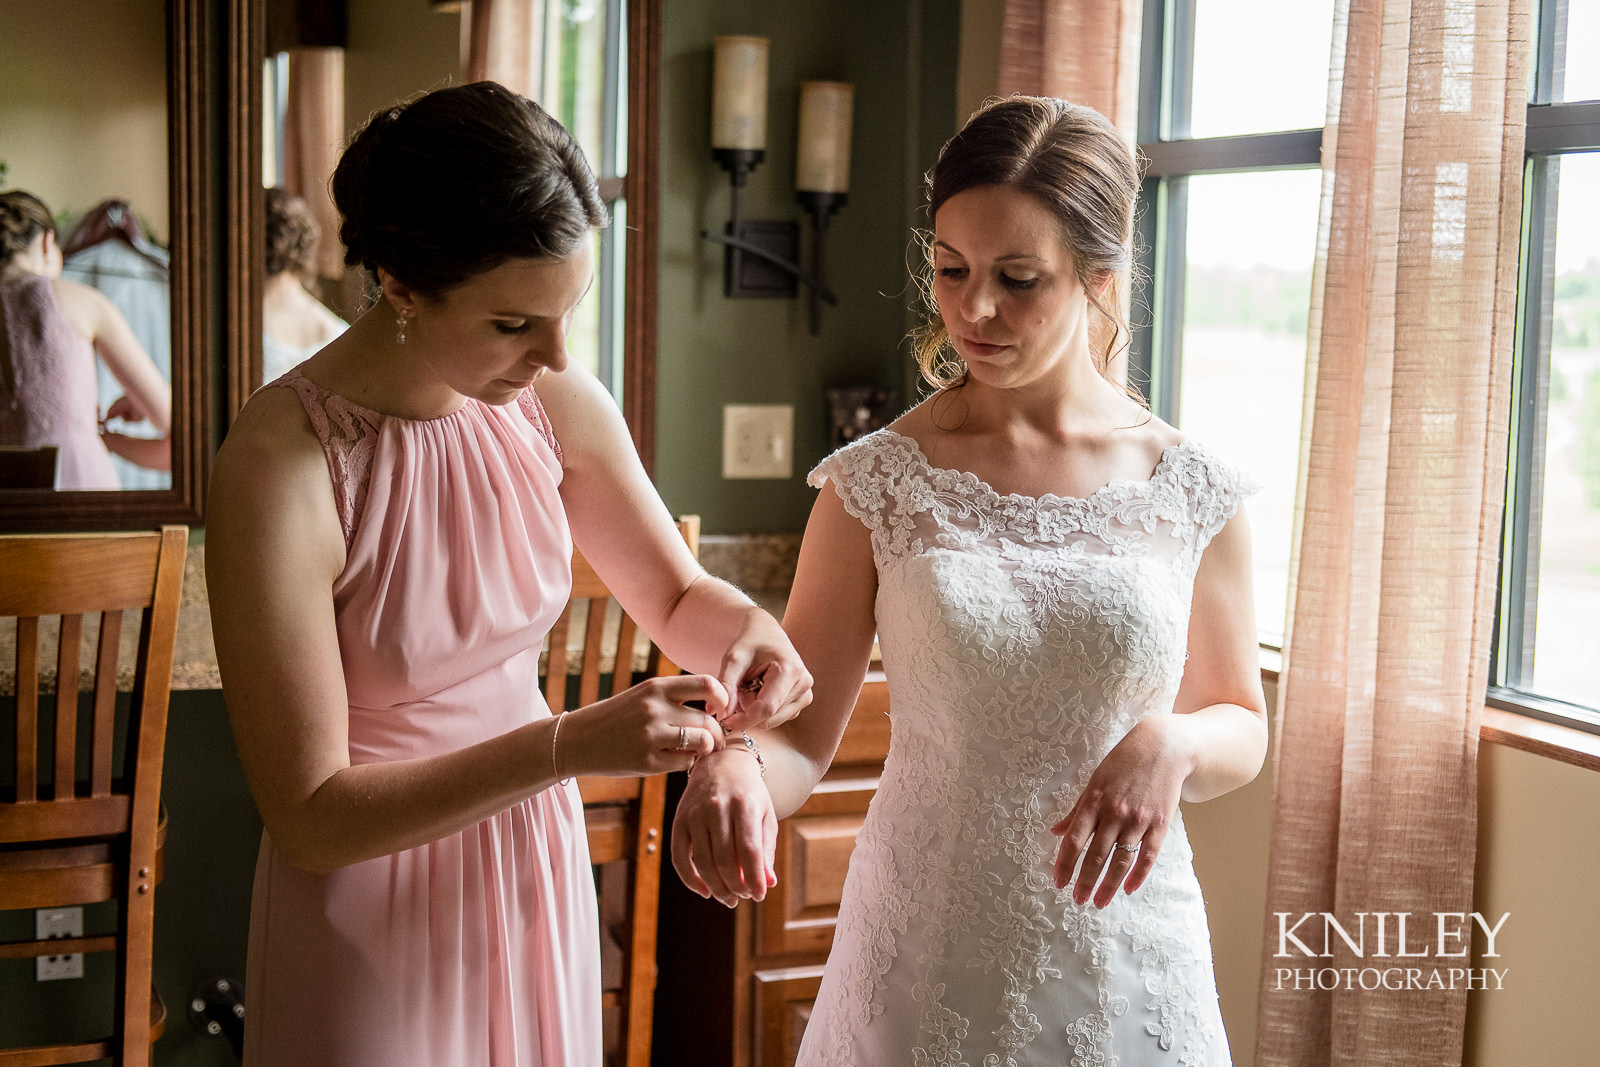 020 - Ravenwood Golf Club wedding pictures - Rochester NY - Kniley Photography - XT2B0572.jpg